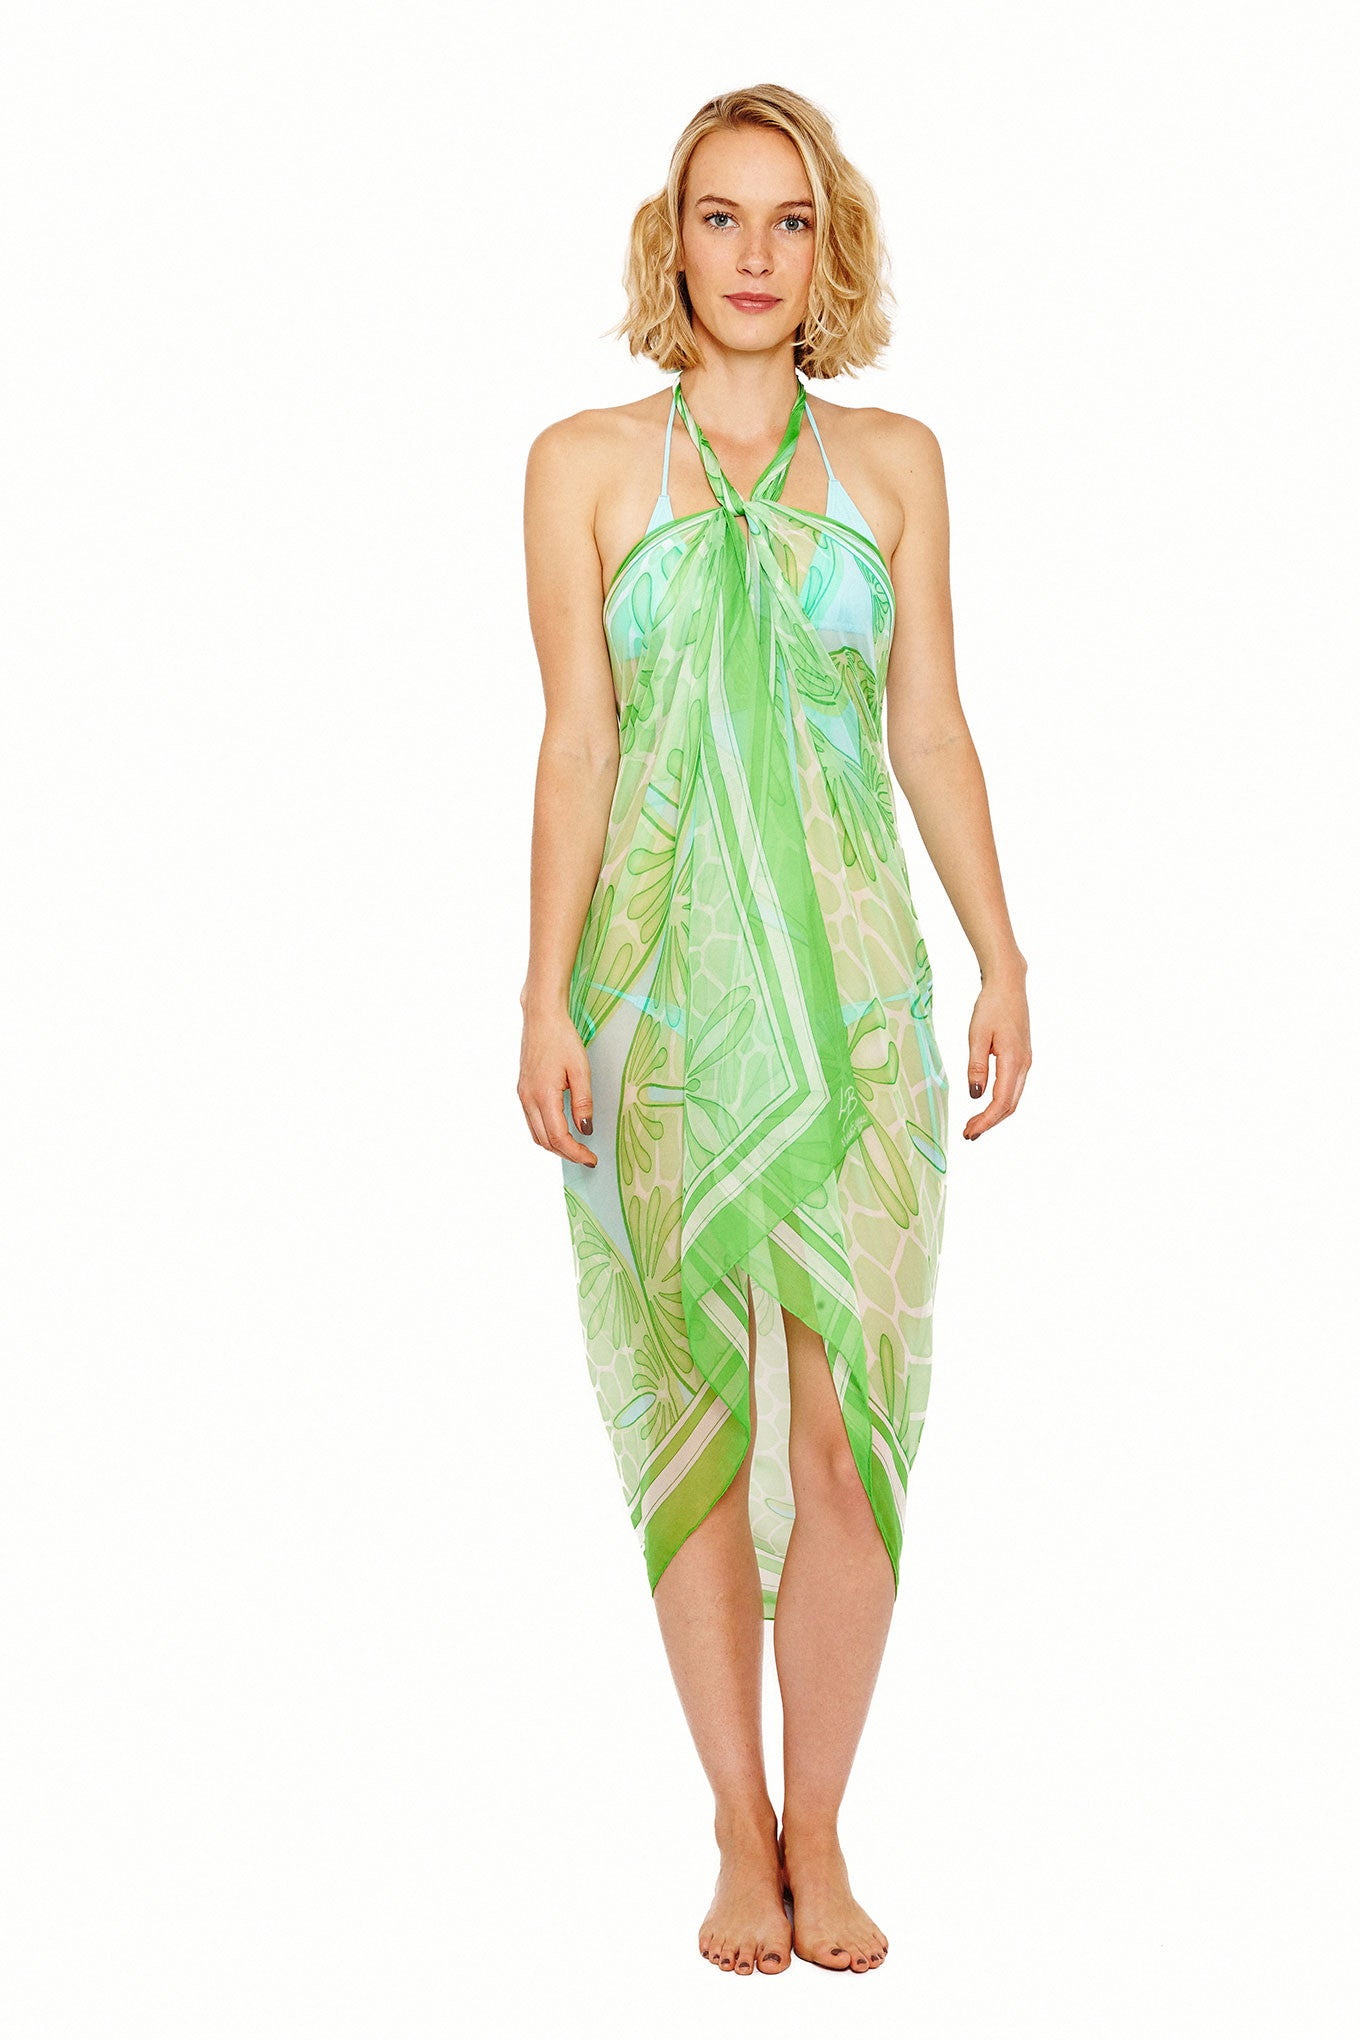 Lotty B Sarong in Silk Chiffon (Sand Dollar Green) Tied at Neck